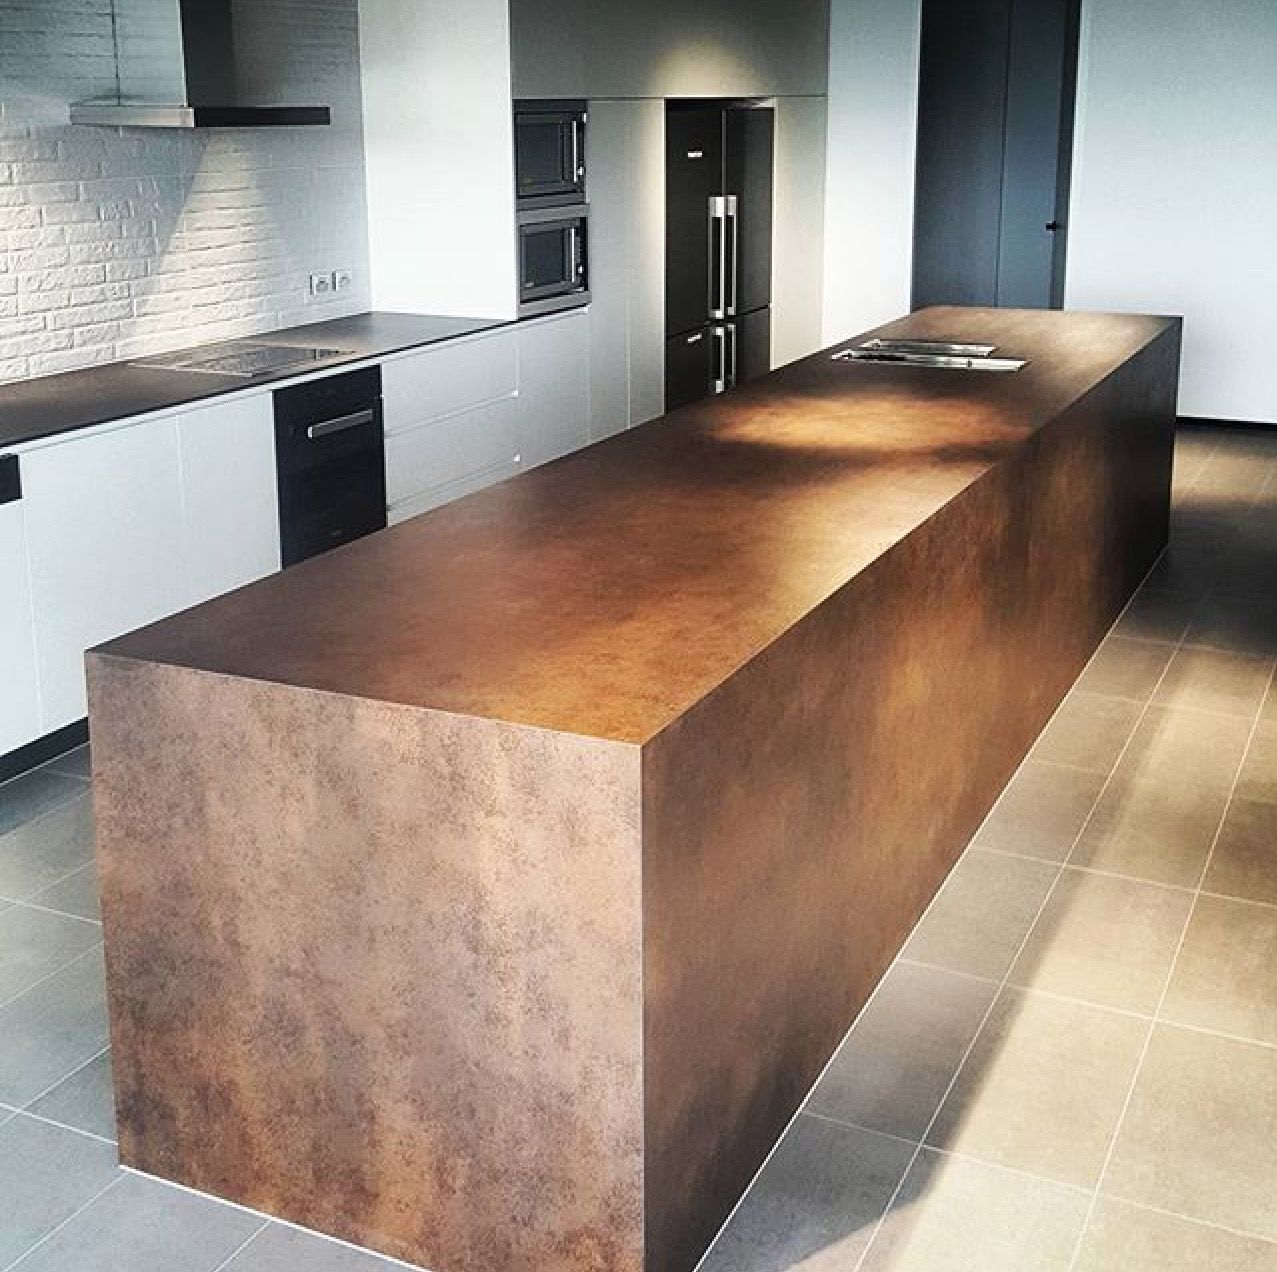 Check out this amazing Neolith Corten island bench fabricated by ...